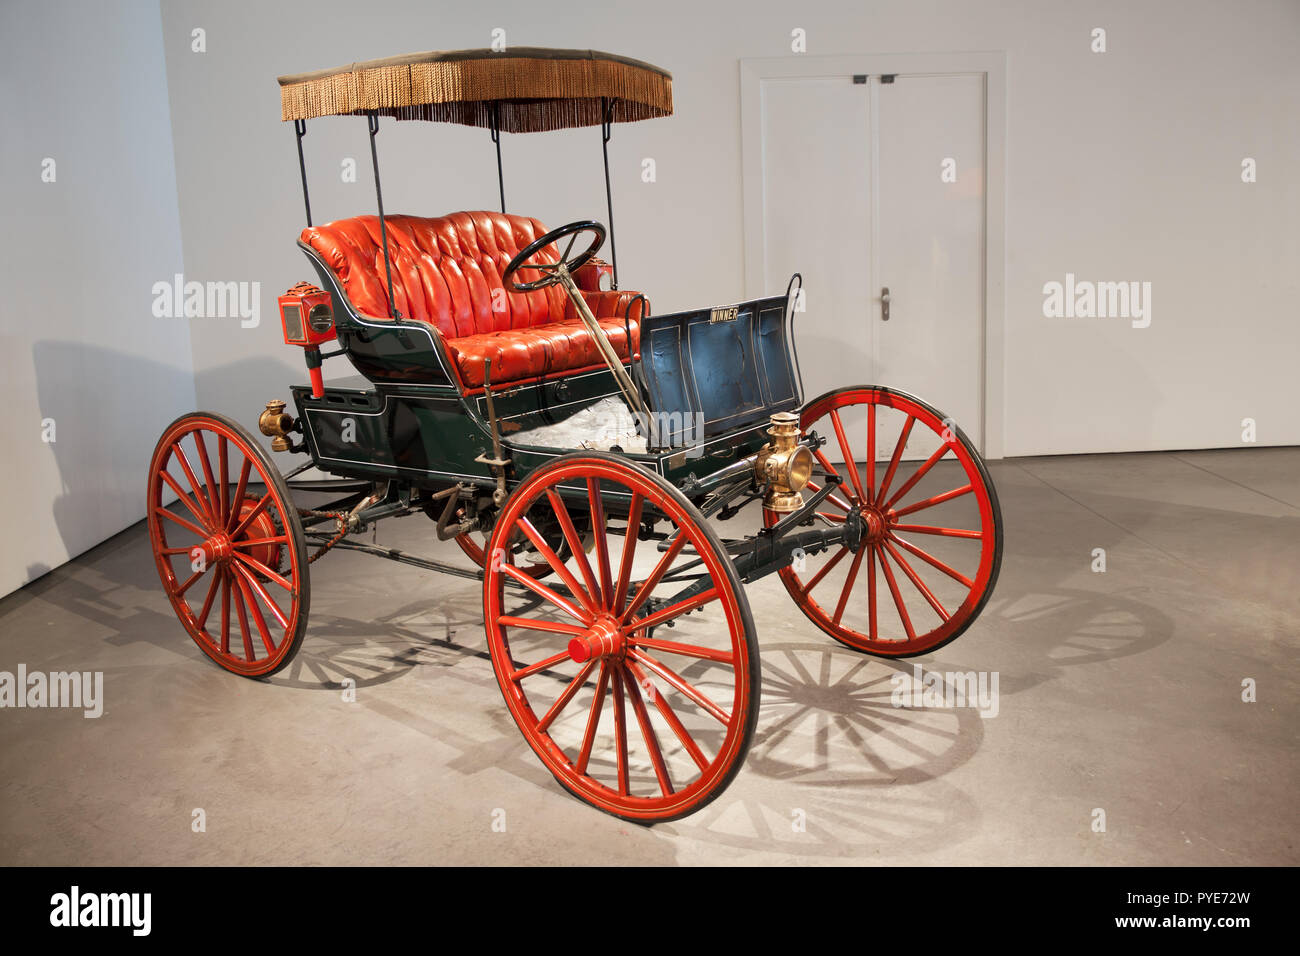 More than a hundred years old car at Malaga Car Museum, Spain - Stock Image